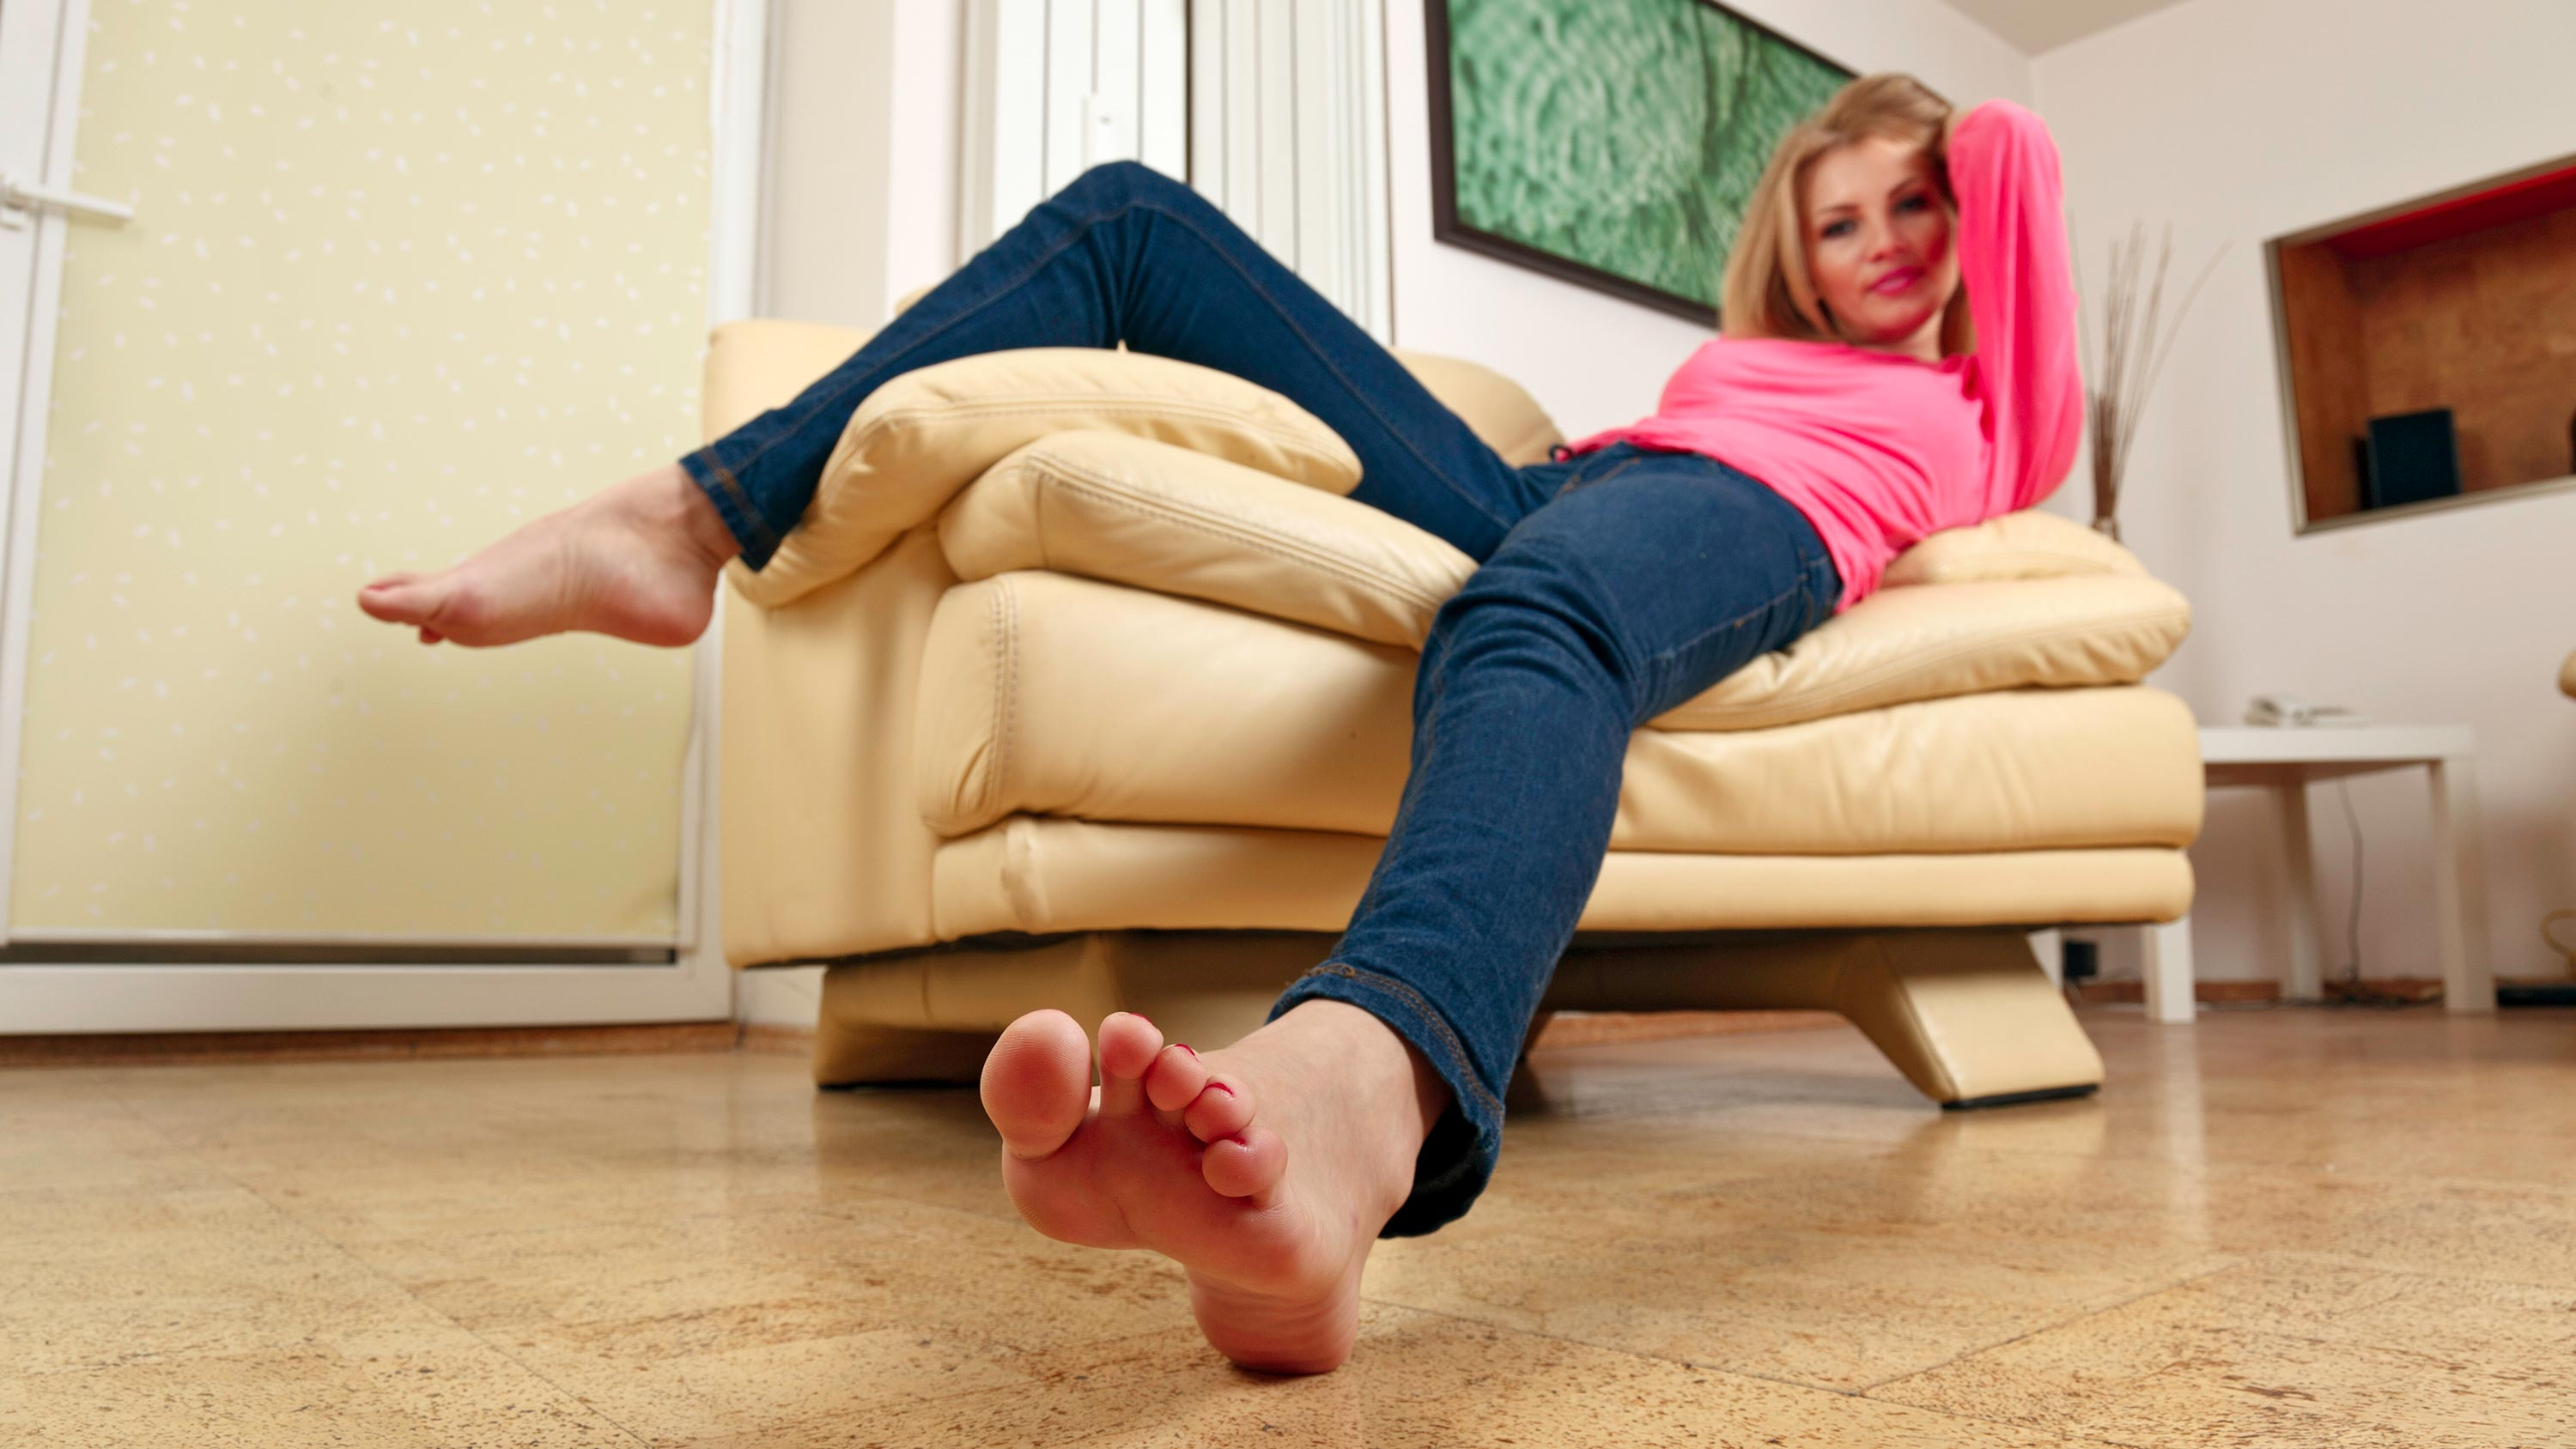 Human Rights >> Clara - Hot blonde showing her wrinkled soles | FeetJeans.com